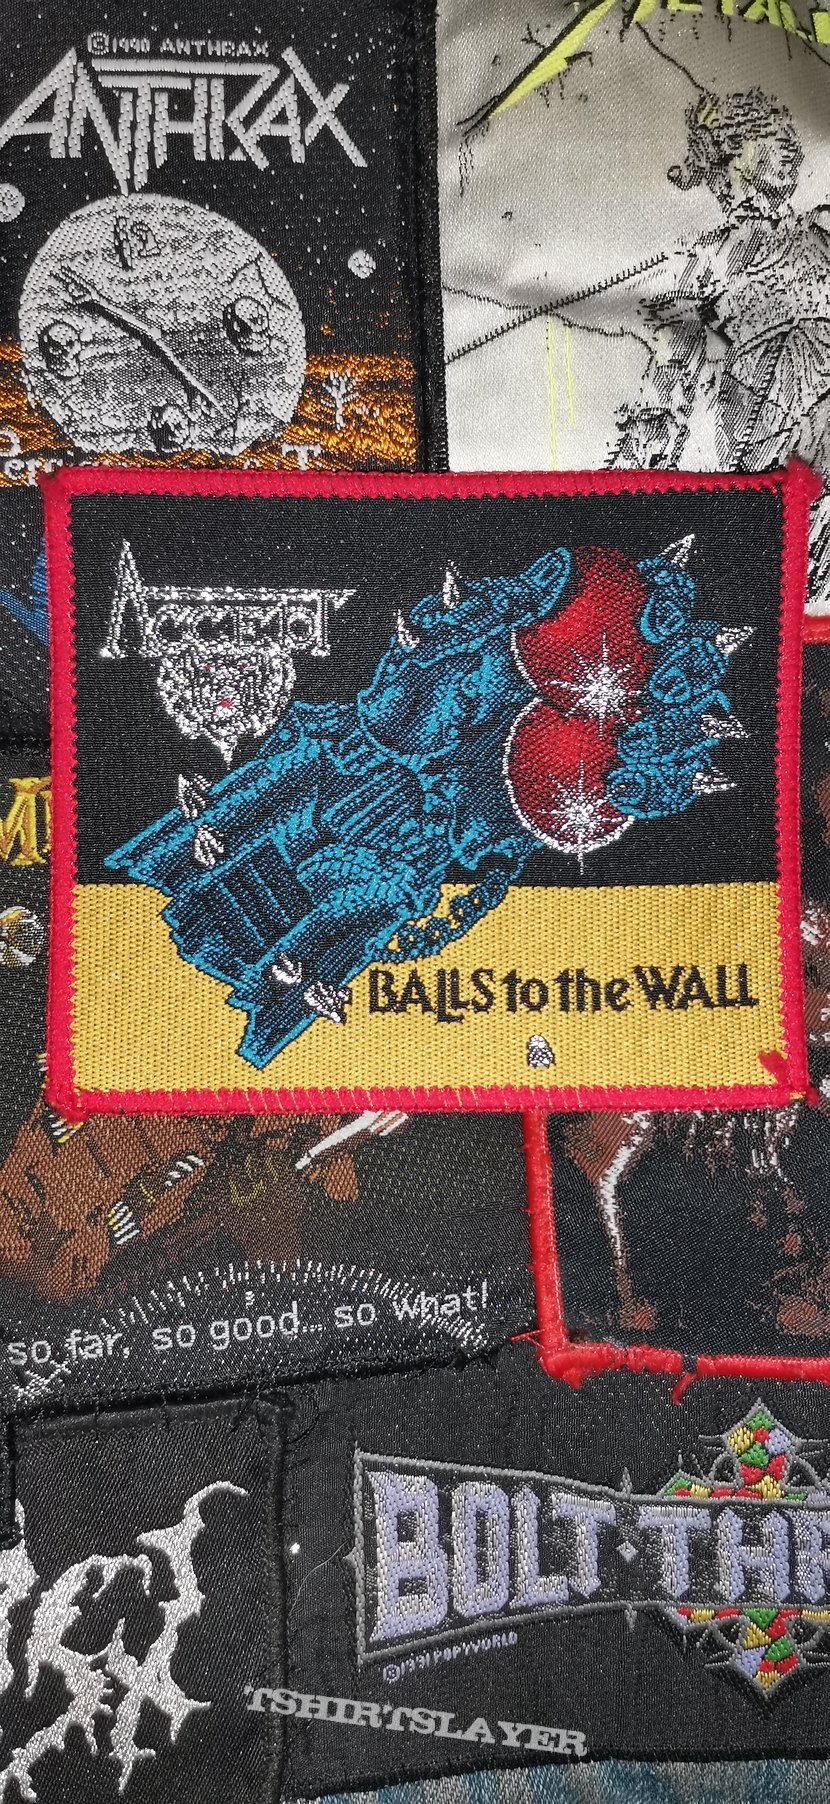 Accept Balls to the wall red border patch